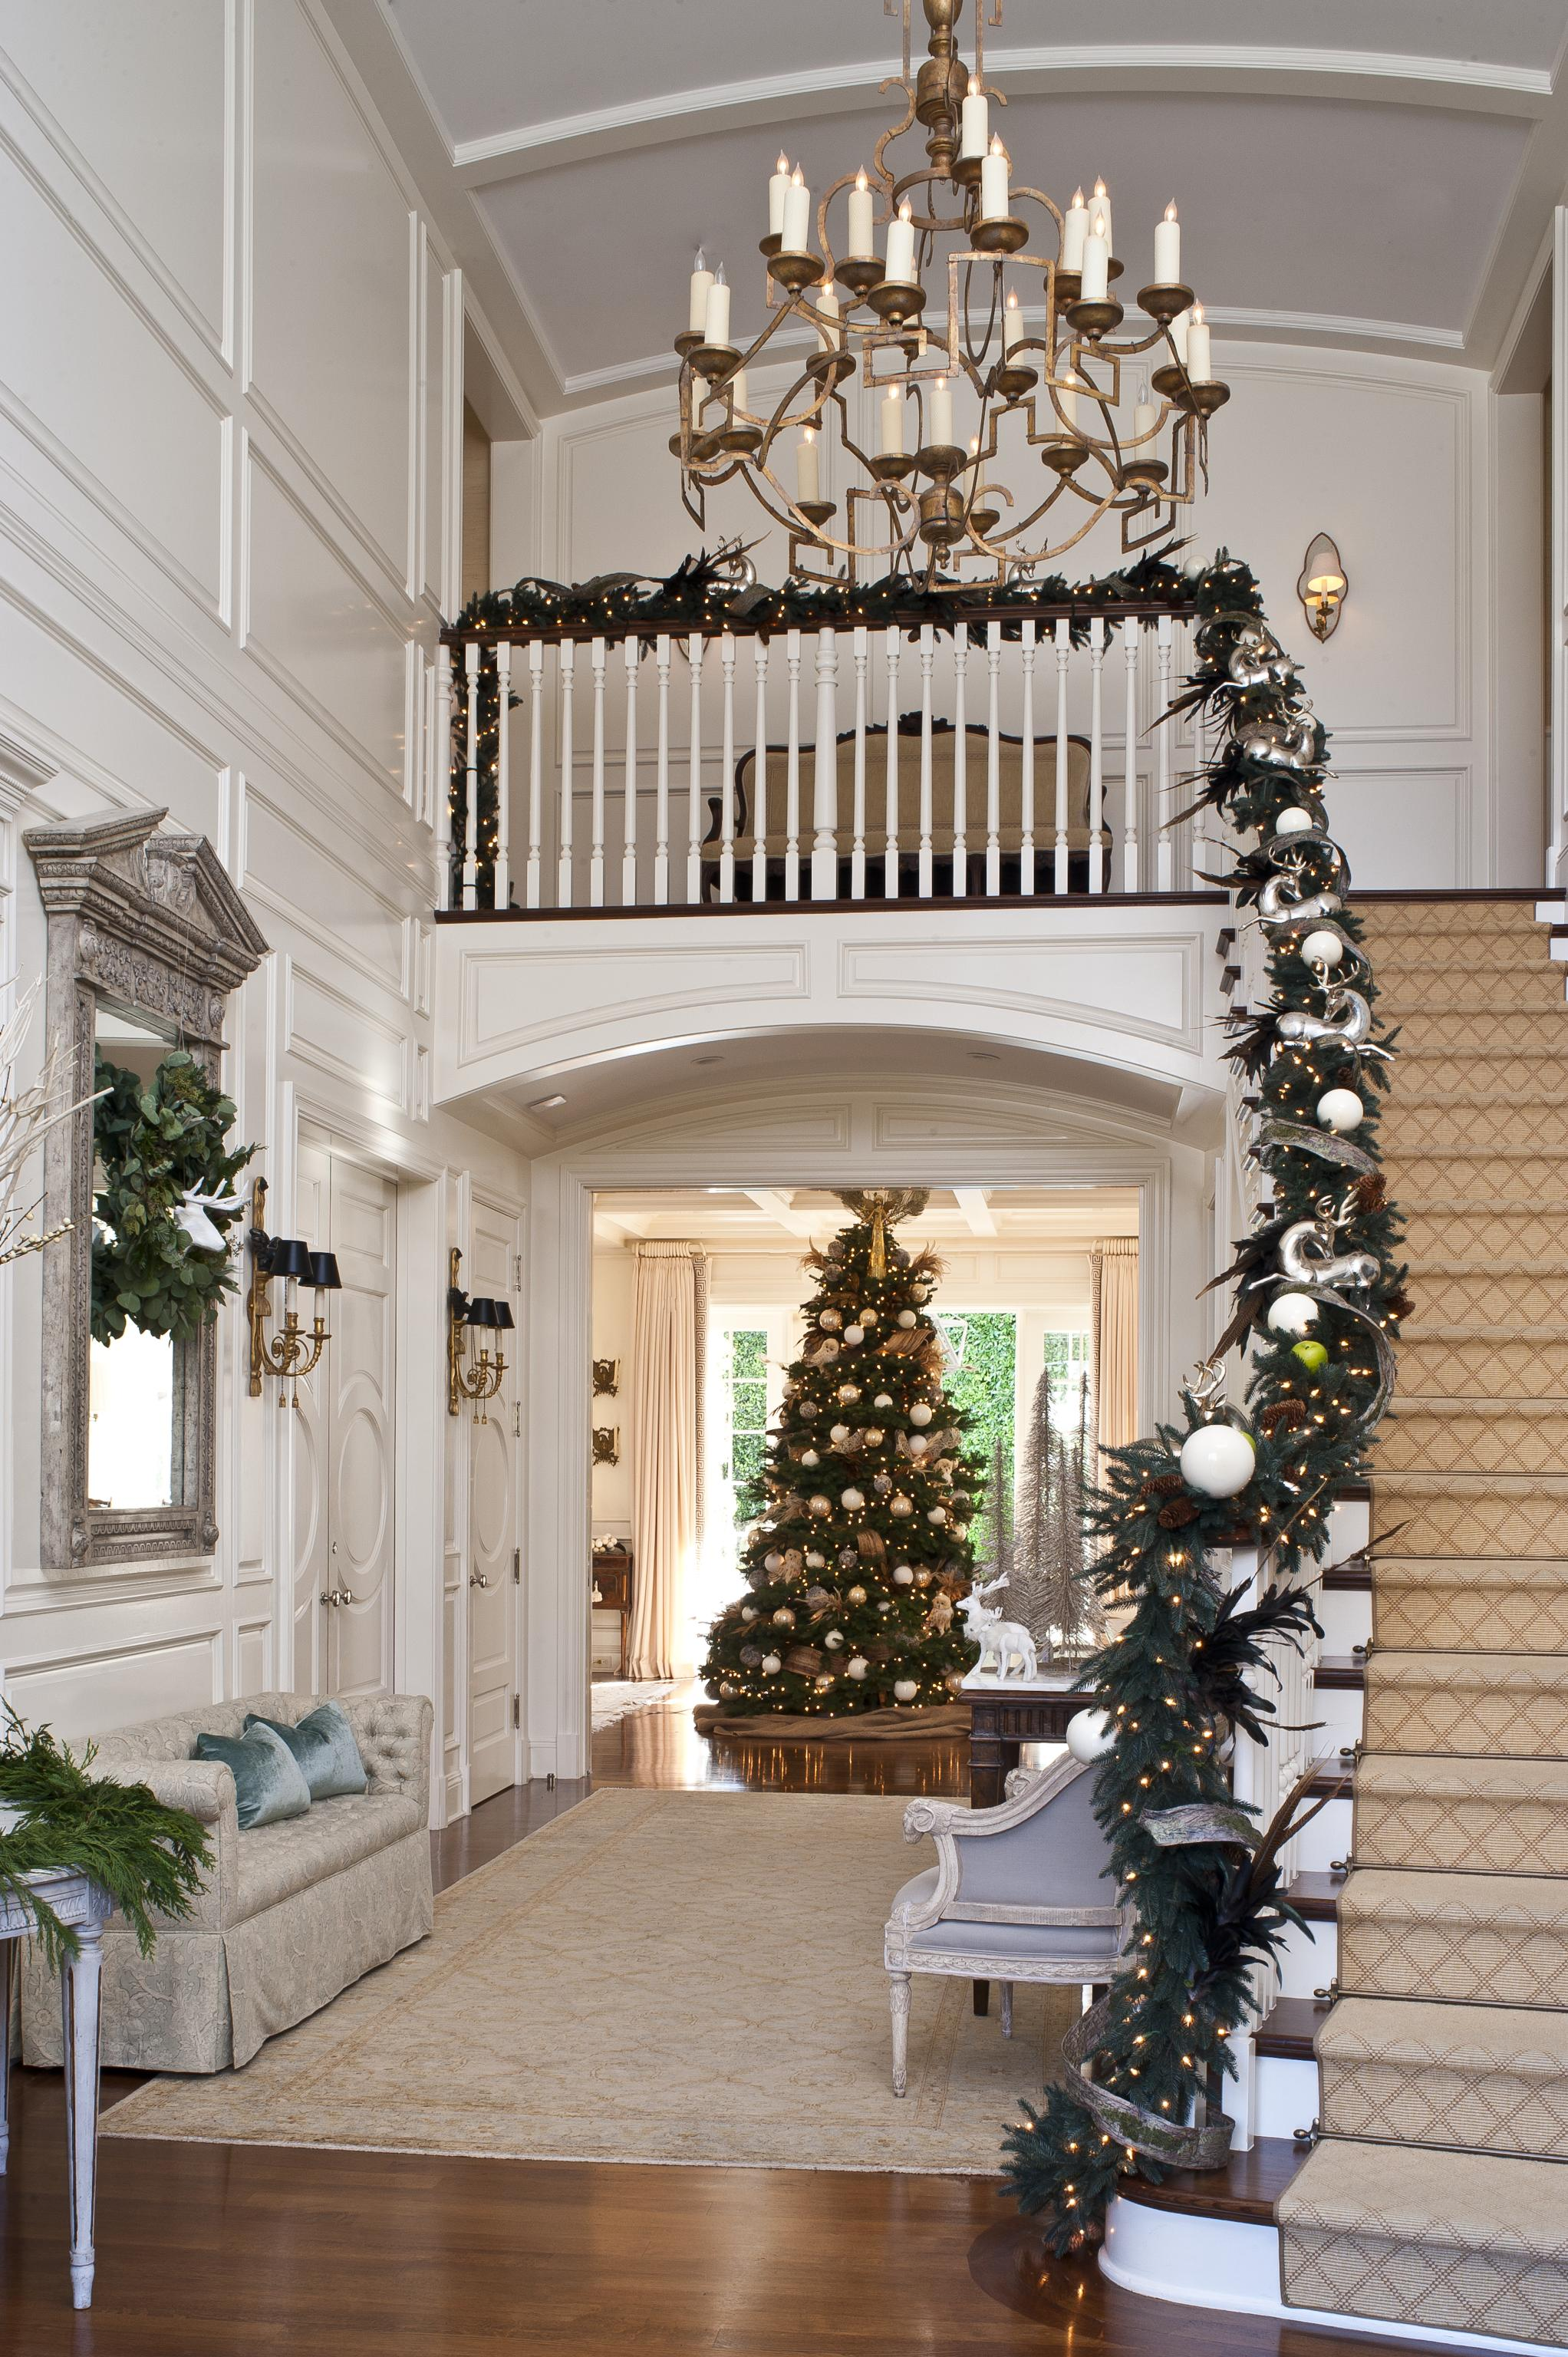 enlarge - Entryway Christmas Decorations